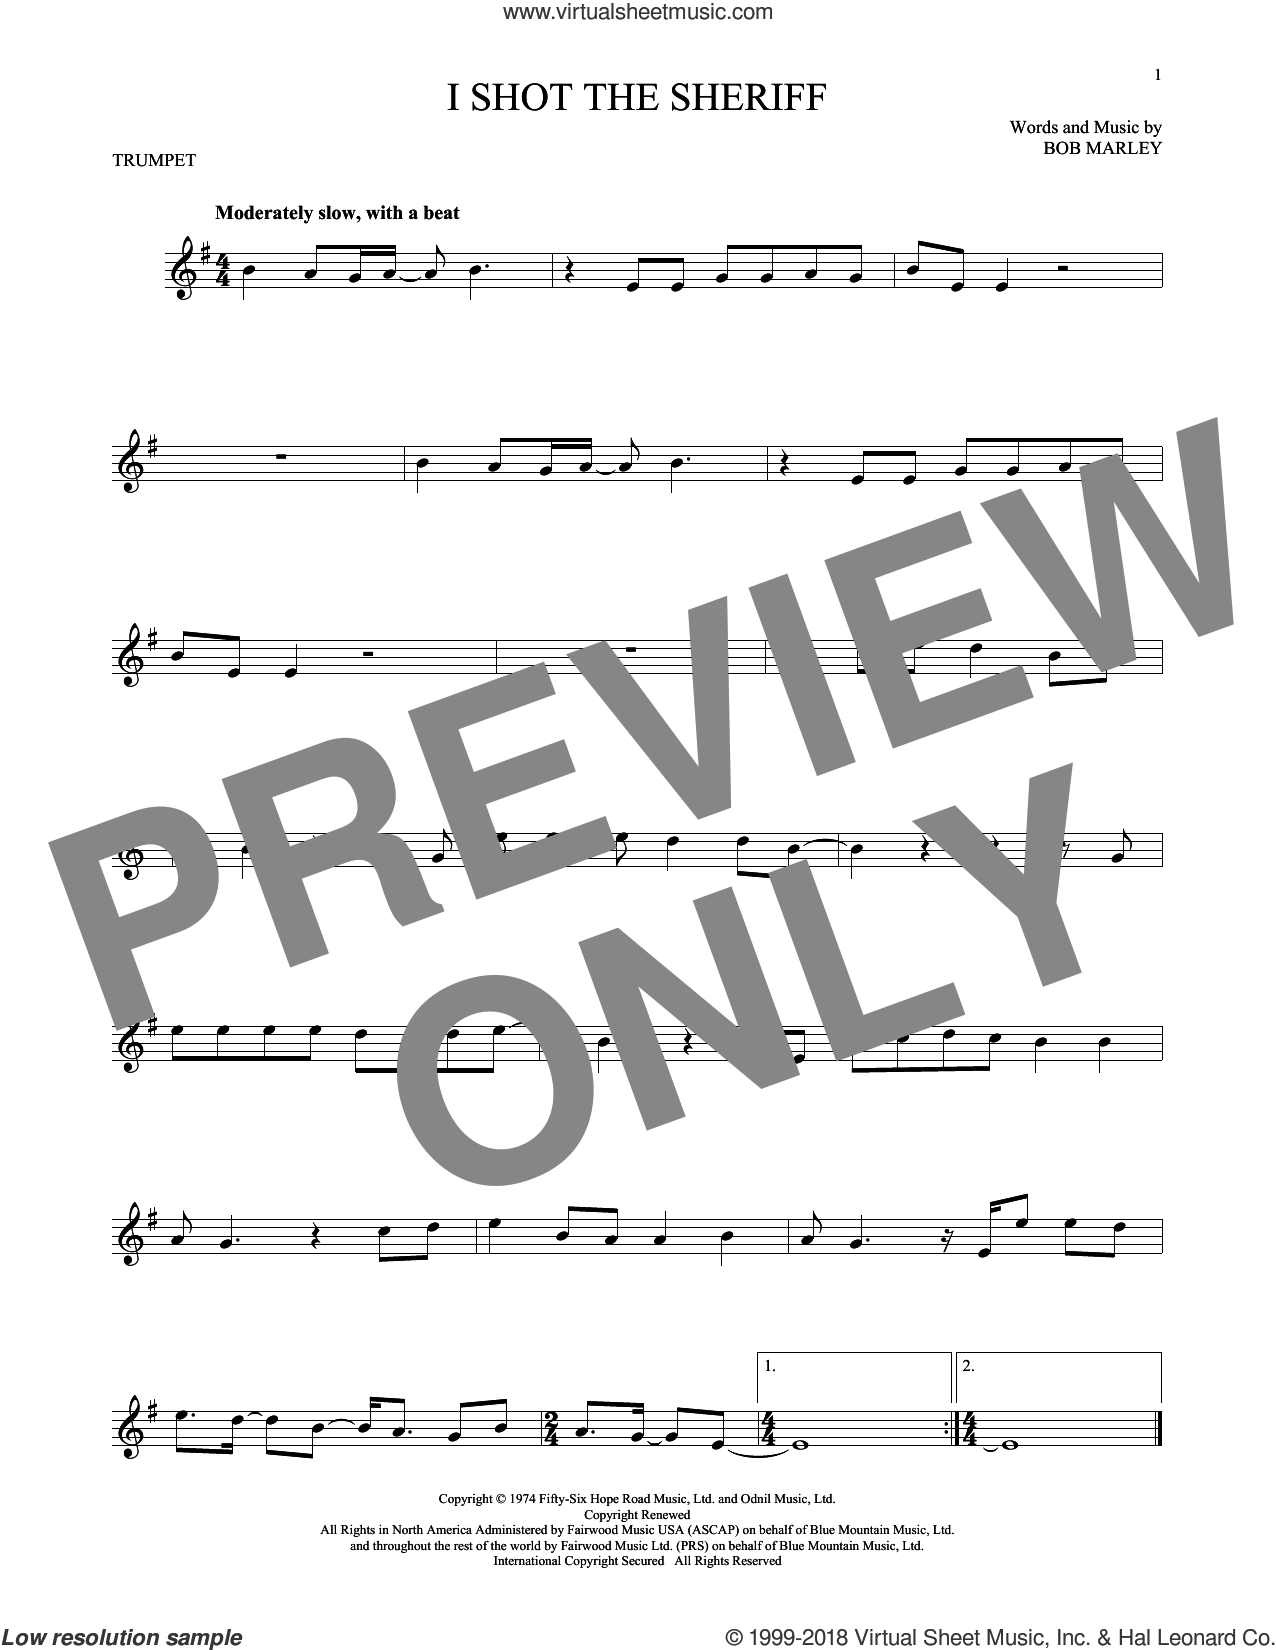 I Shot The Sheriff sheet music for trumpet solo by Bob Marley, Eric Clapton and Warren G, intermediate skill level